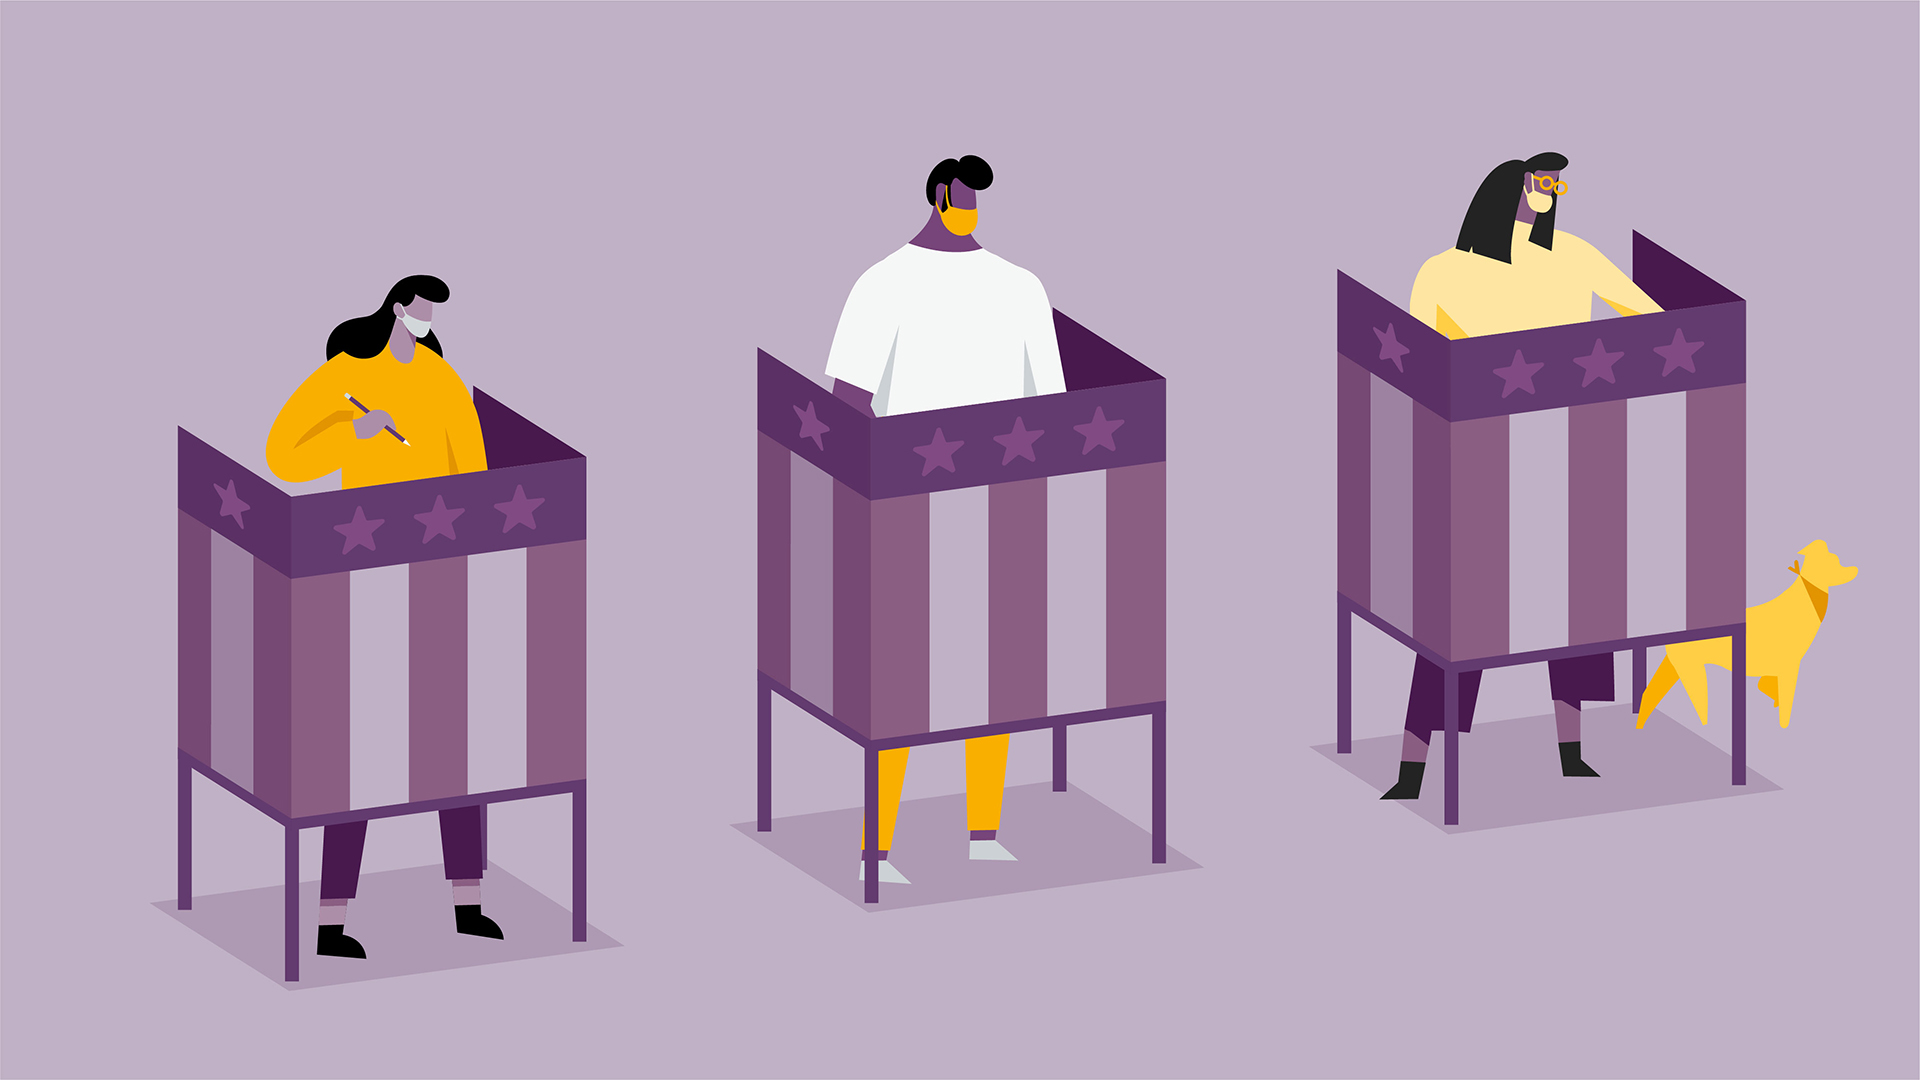 illustration of 3 people at the voting booth